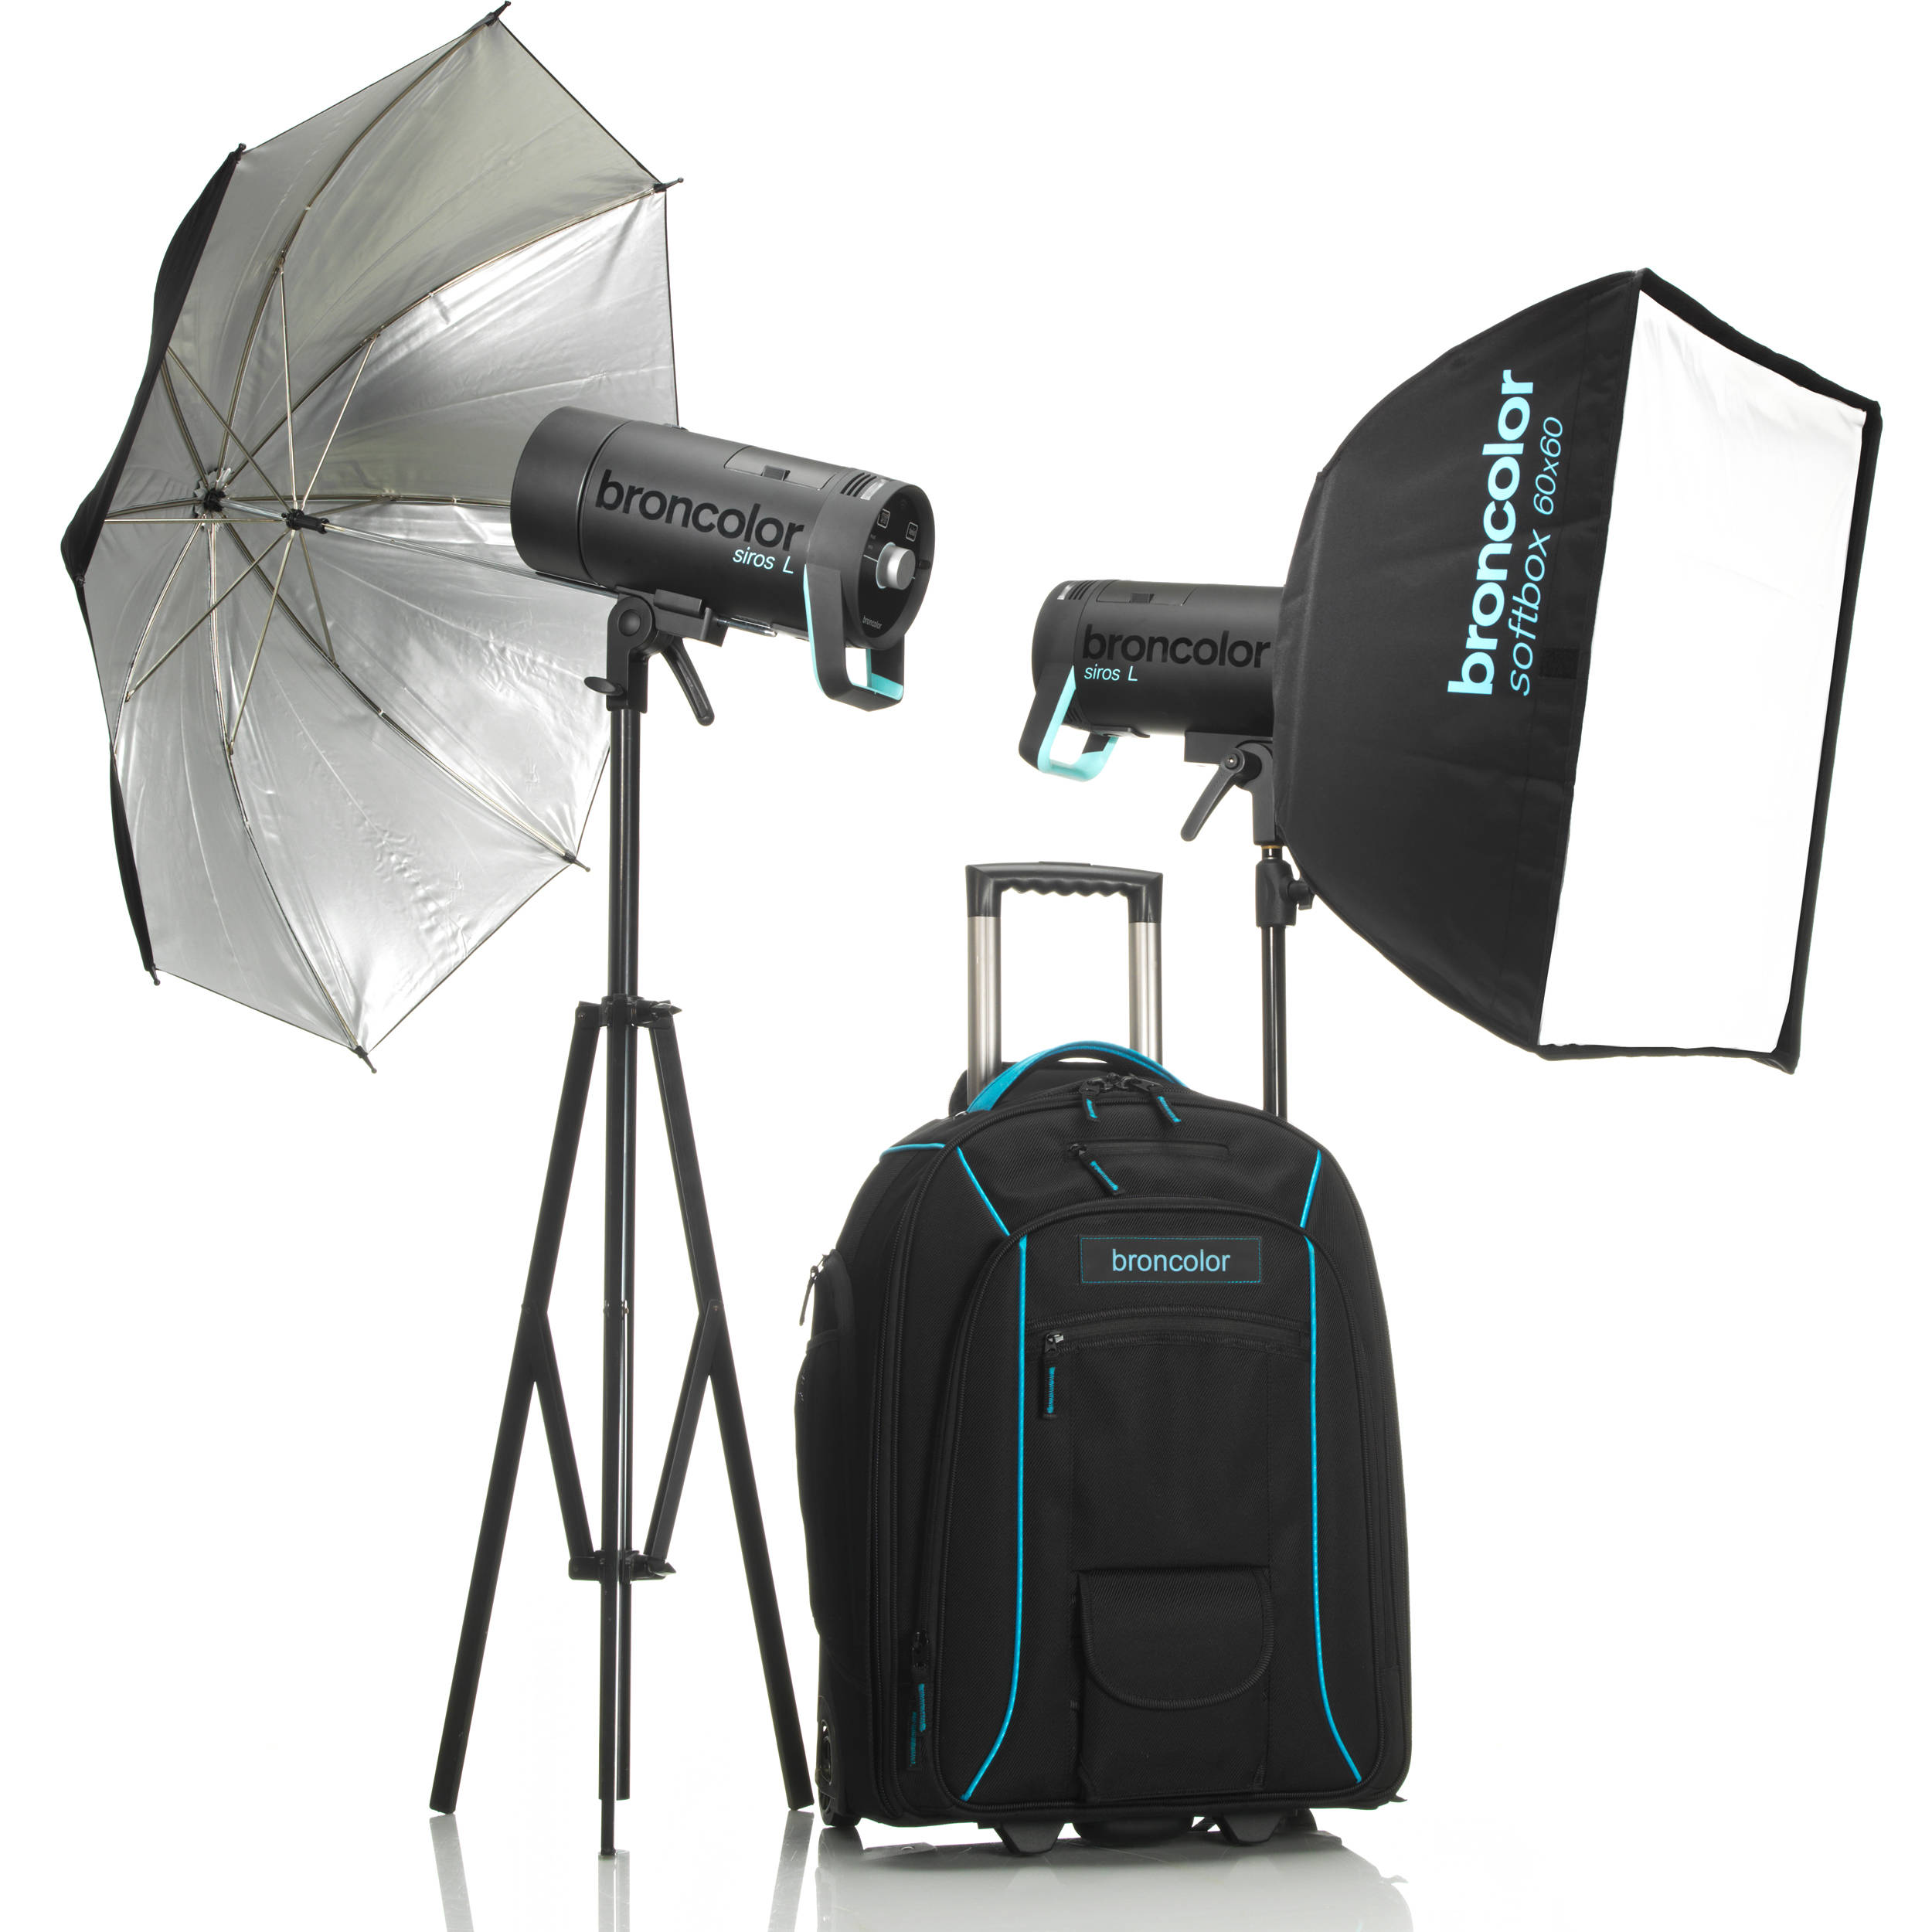 Broncolor Siros L 800Ws Battery-Powered 2-Light B-31.751.07 B&H